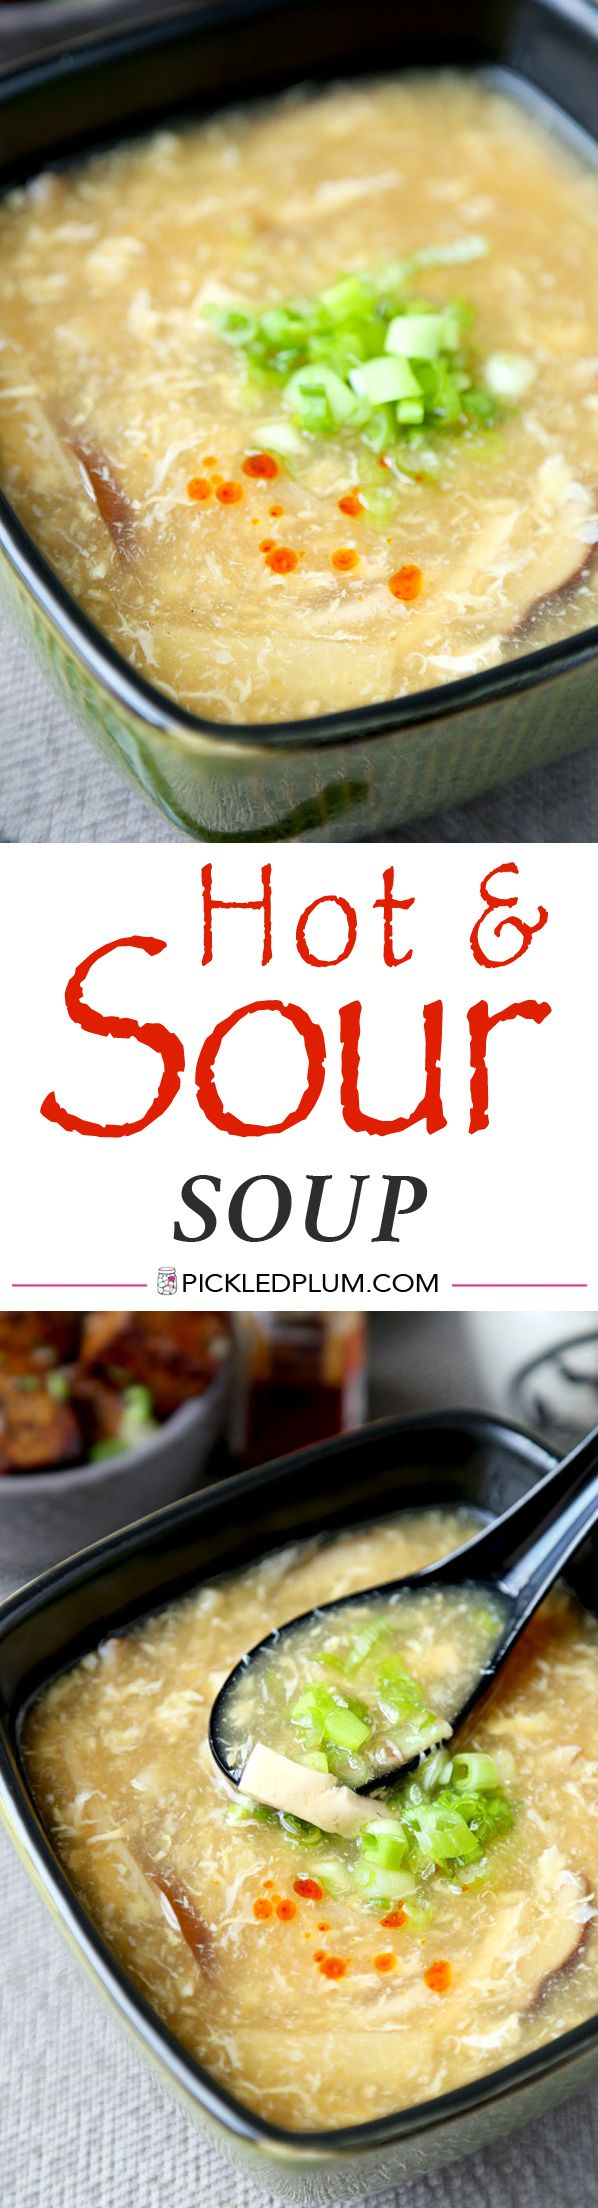 Hot and Sour Soup Recipe. Only 15 minutes to make from start to finish! This classic Chinese soup is tasty, light and healthy - the perfect late night snack! http://www.pickledplum.com/hot-and-sour-soup-recipe/